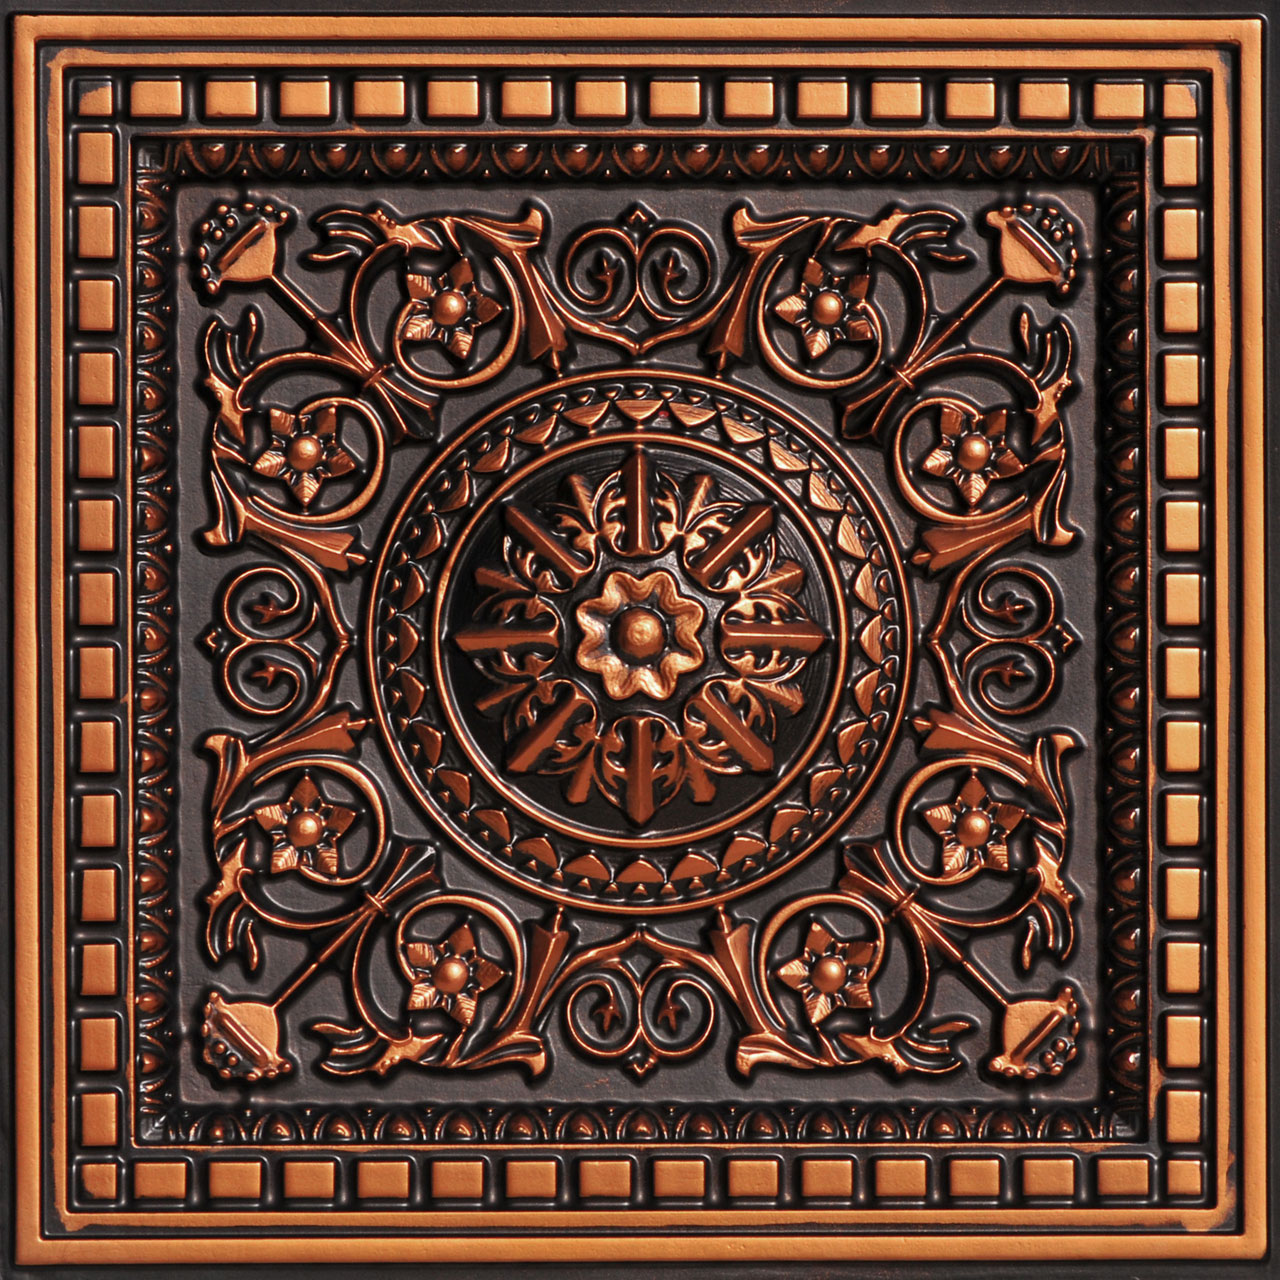 Da Vinci - Faux Tin Ceiling Tile - Drop in - 24 in x 24 in - #215